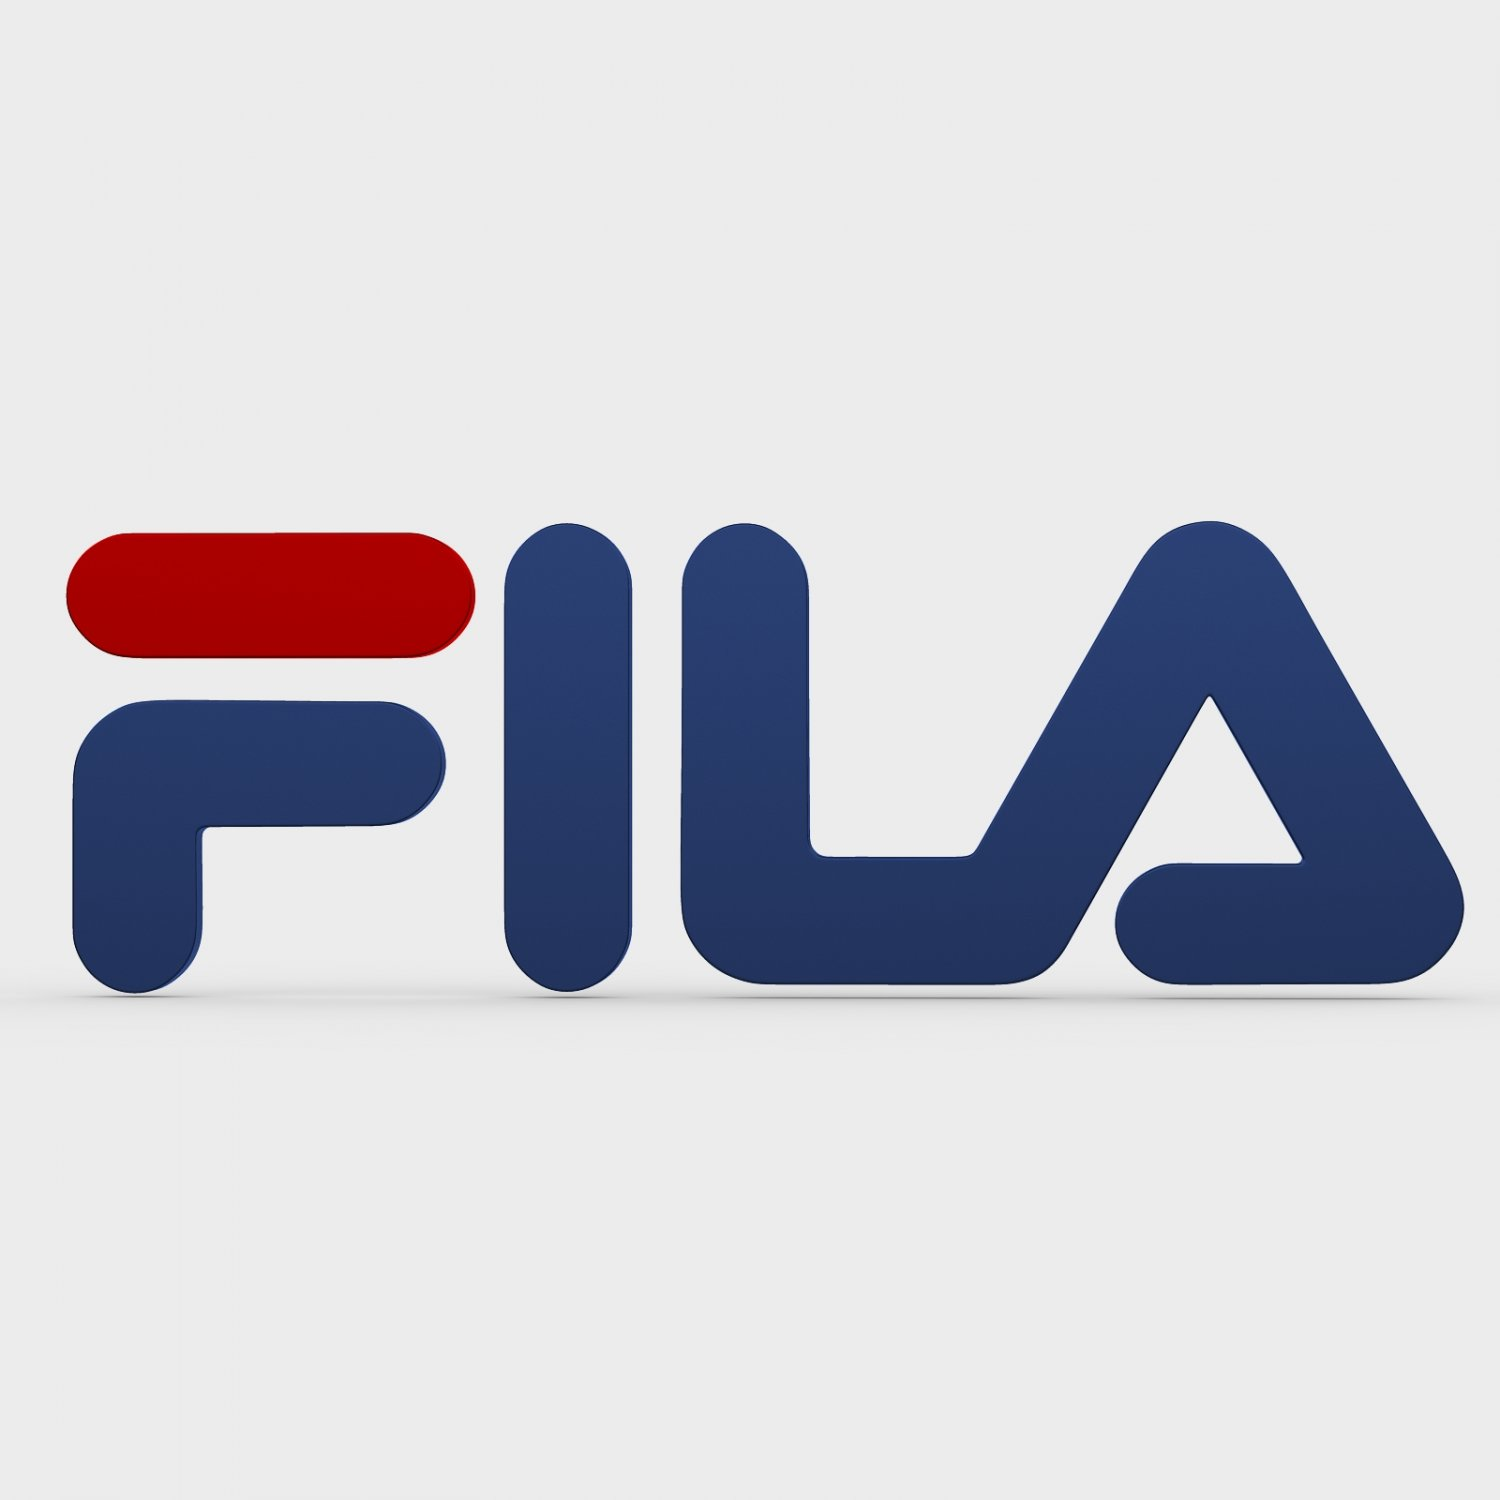 size 7 wide varieties a few days away Fila North America with key leadership promotions